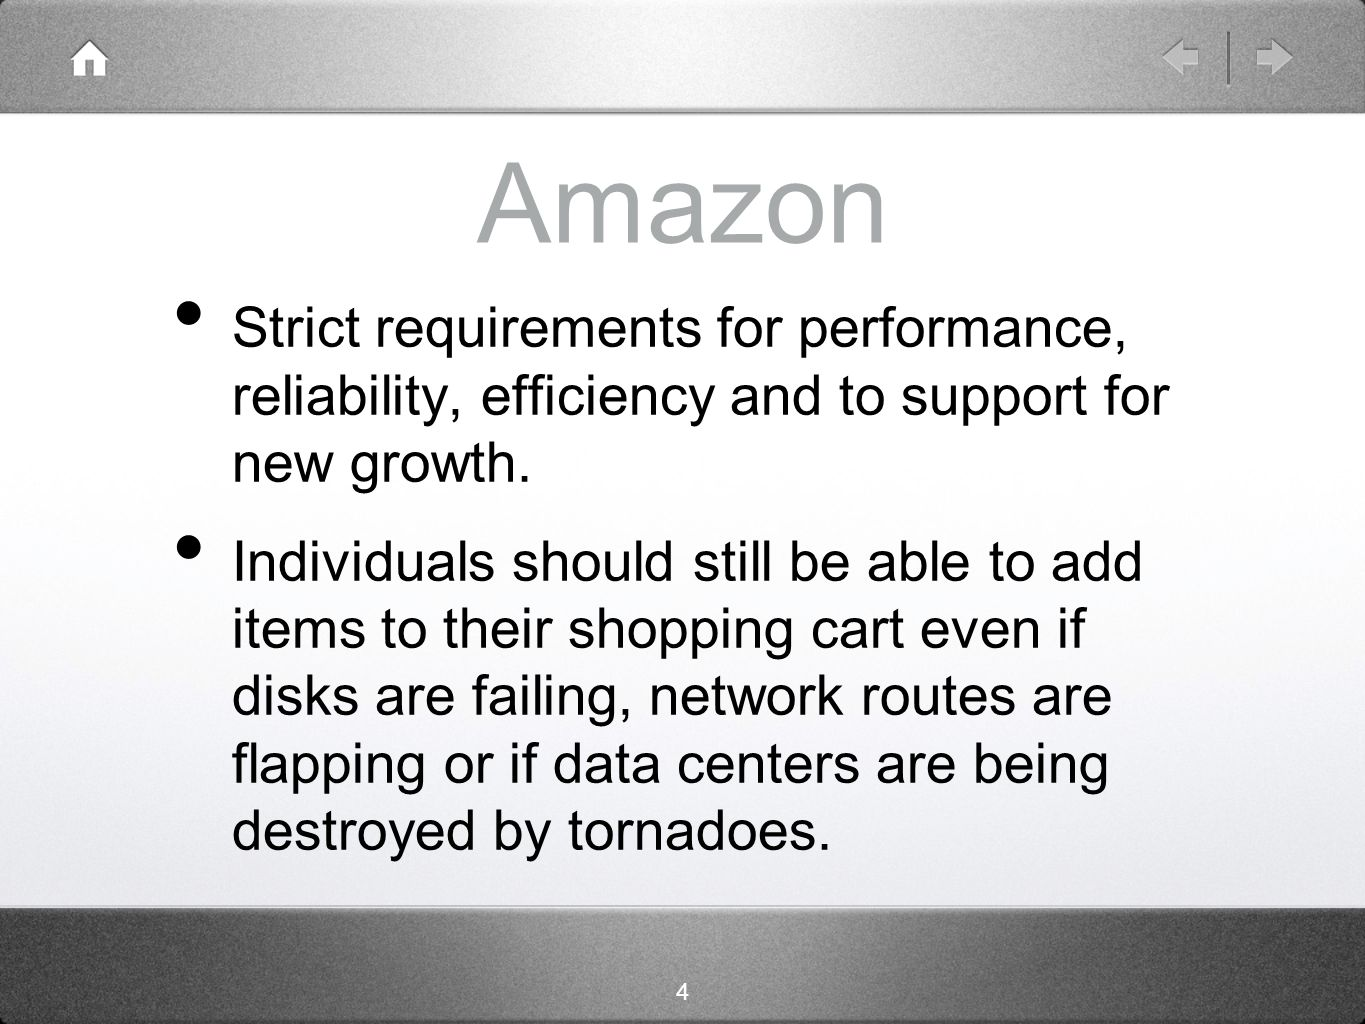 4 Amazon Strict requirements for performance, reliability, efficiency and to support for new growth.